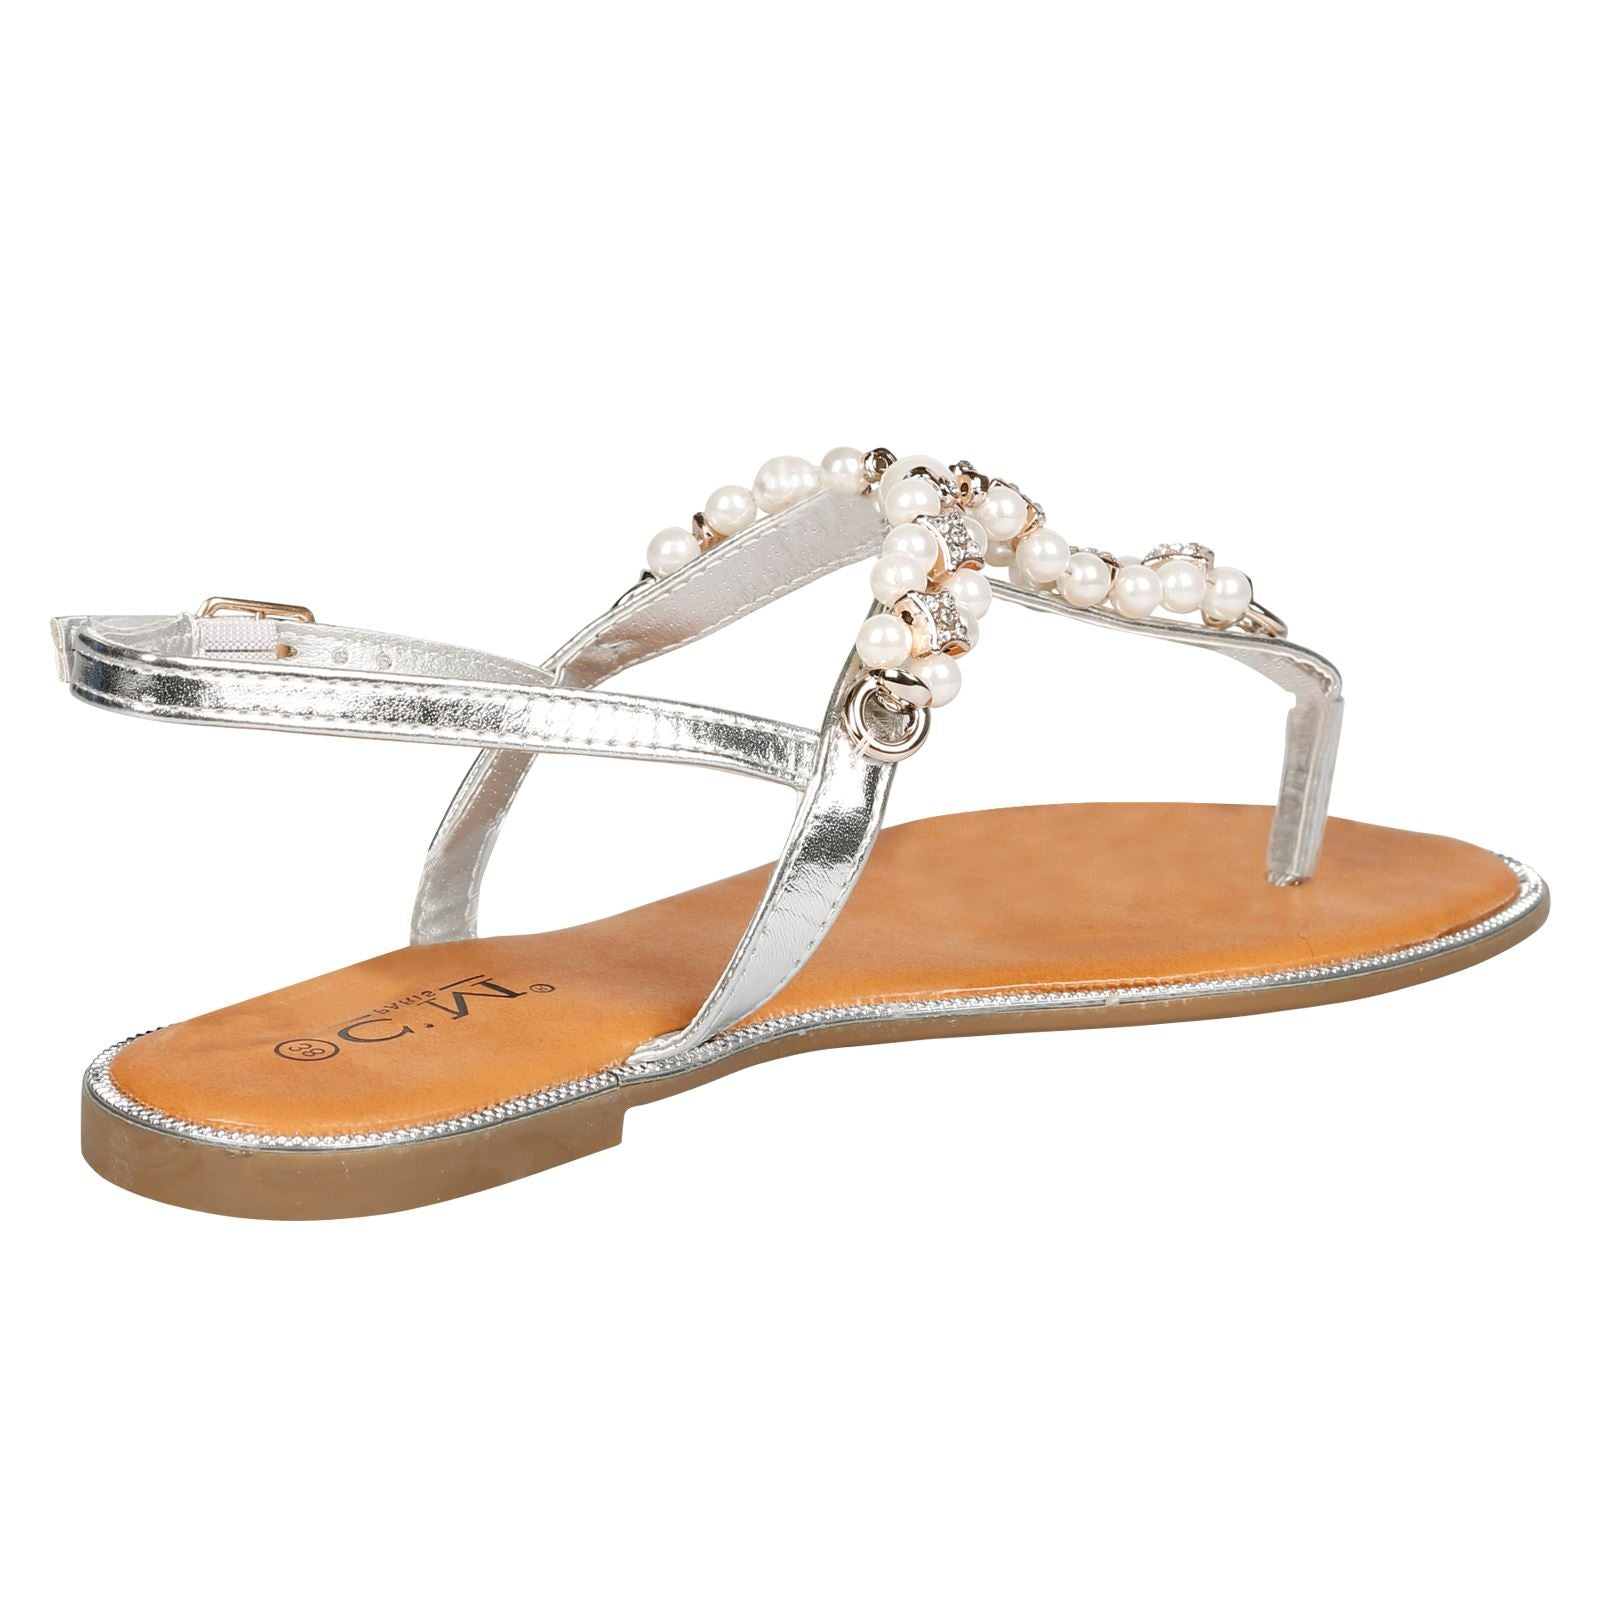 Julissa Pearl Sandals in Silver